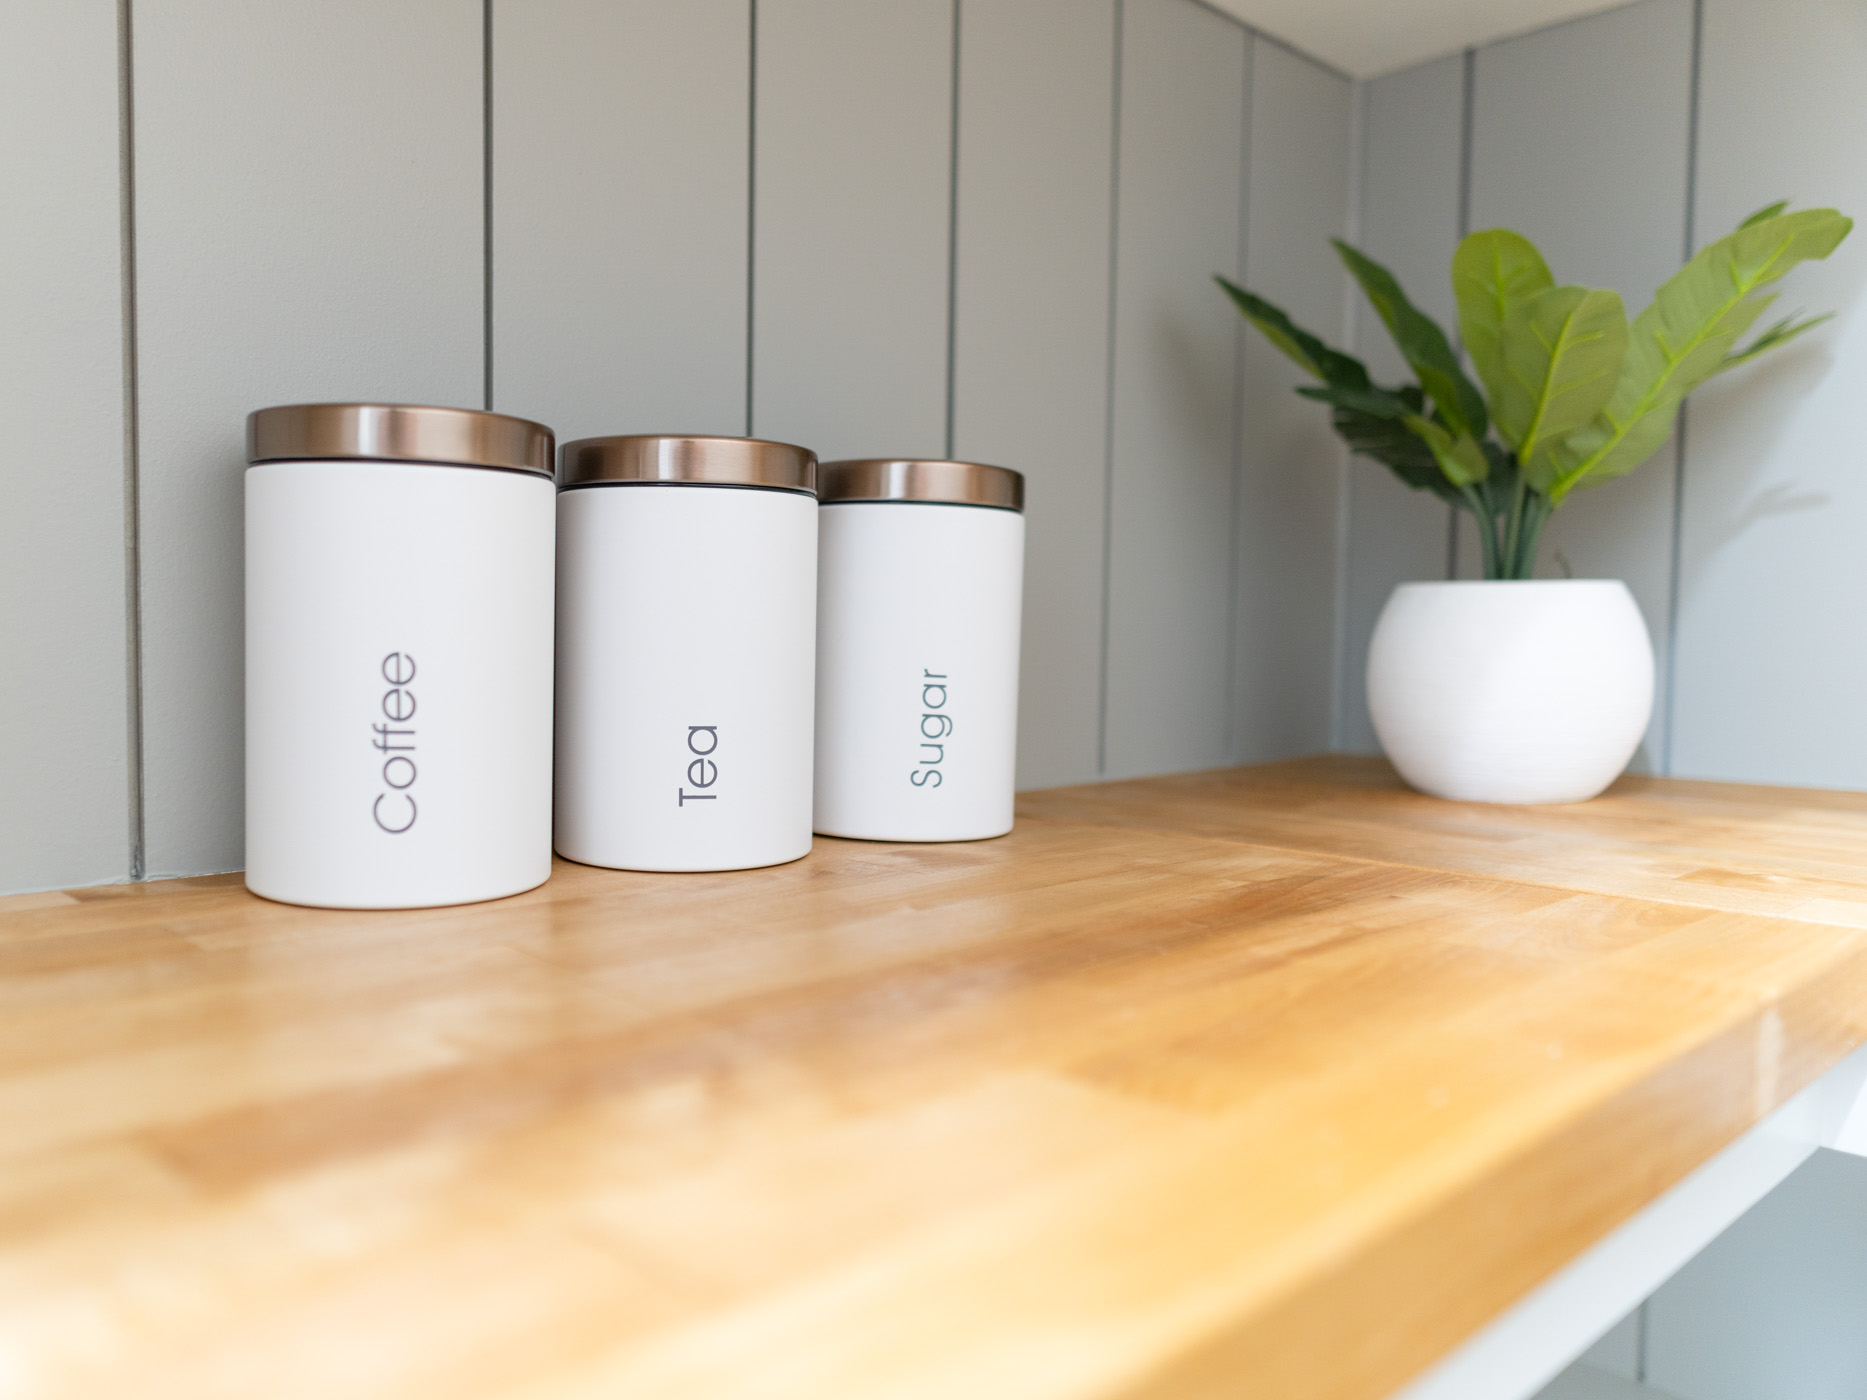 a picture showing 3 white storage canisters on a wooden countertop